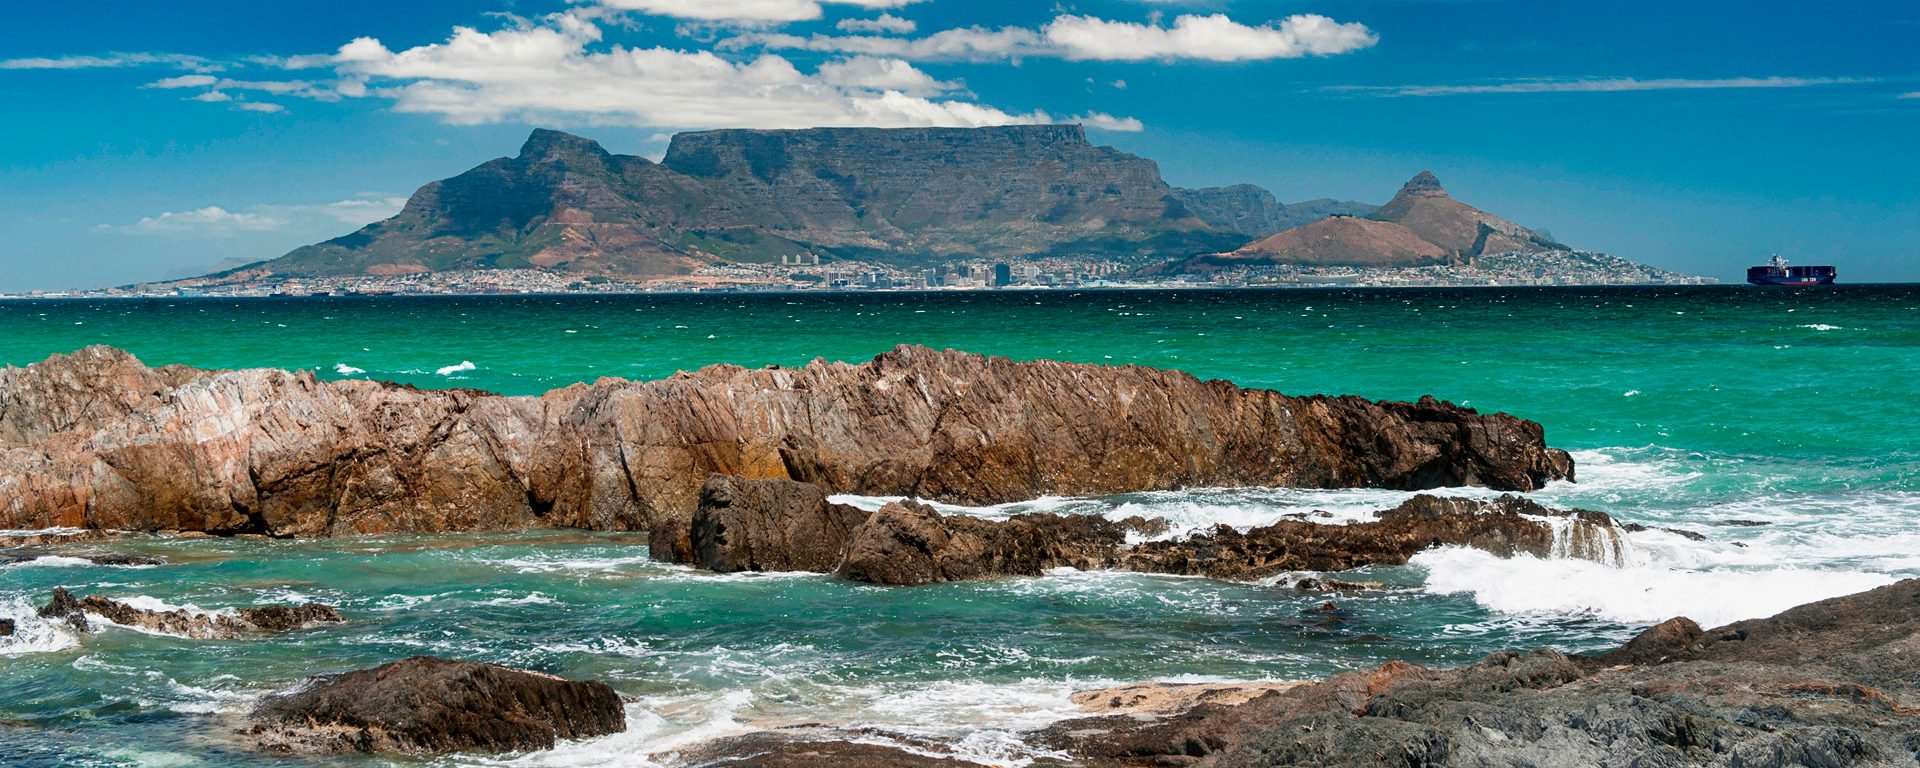 Table Mountain and Cape Town viewed from across Table Bay, South Africa